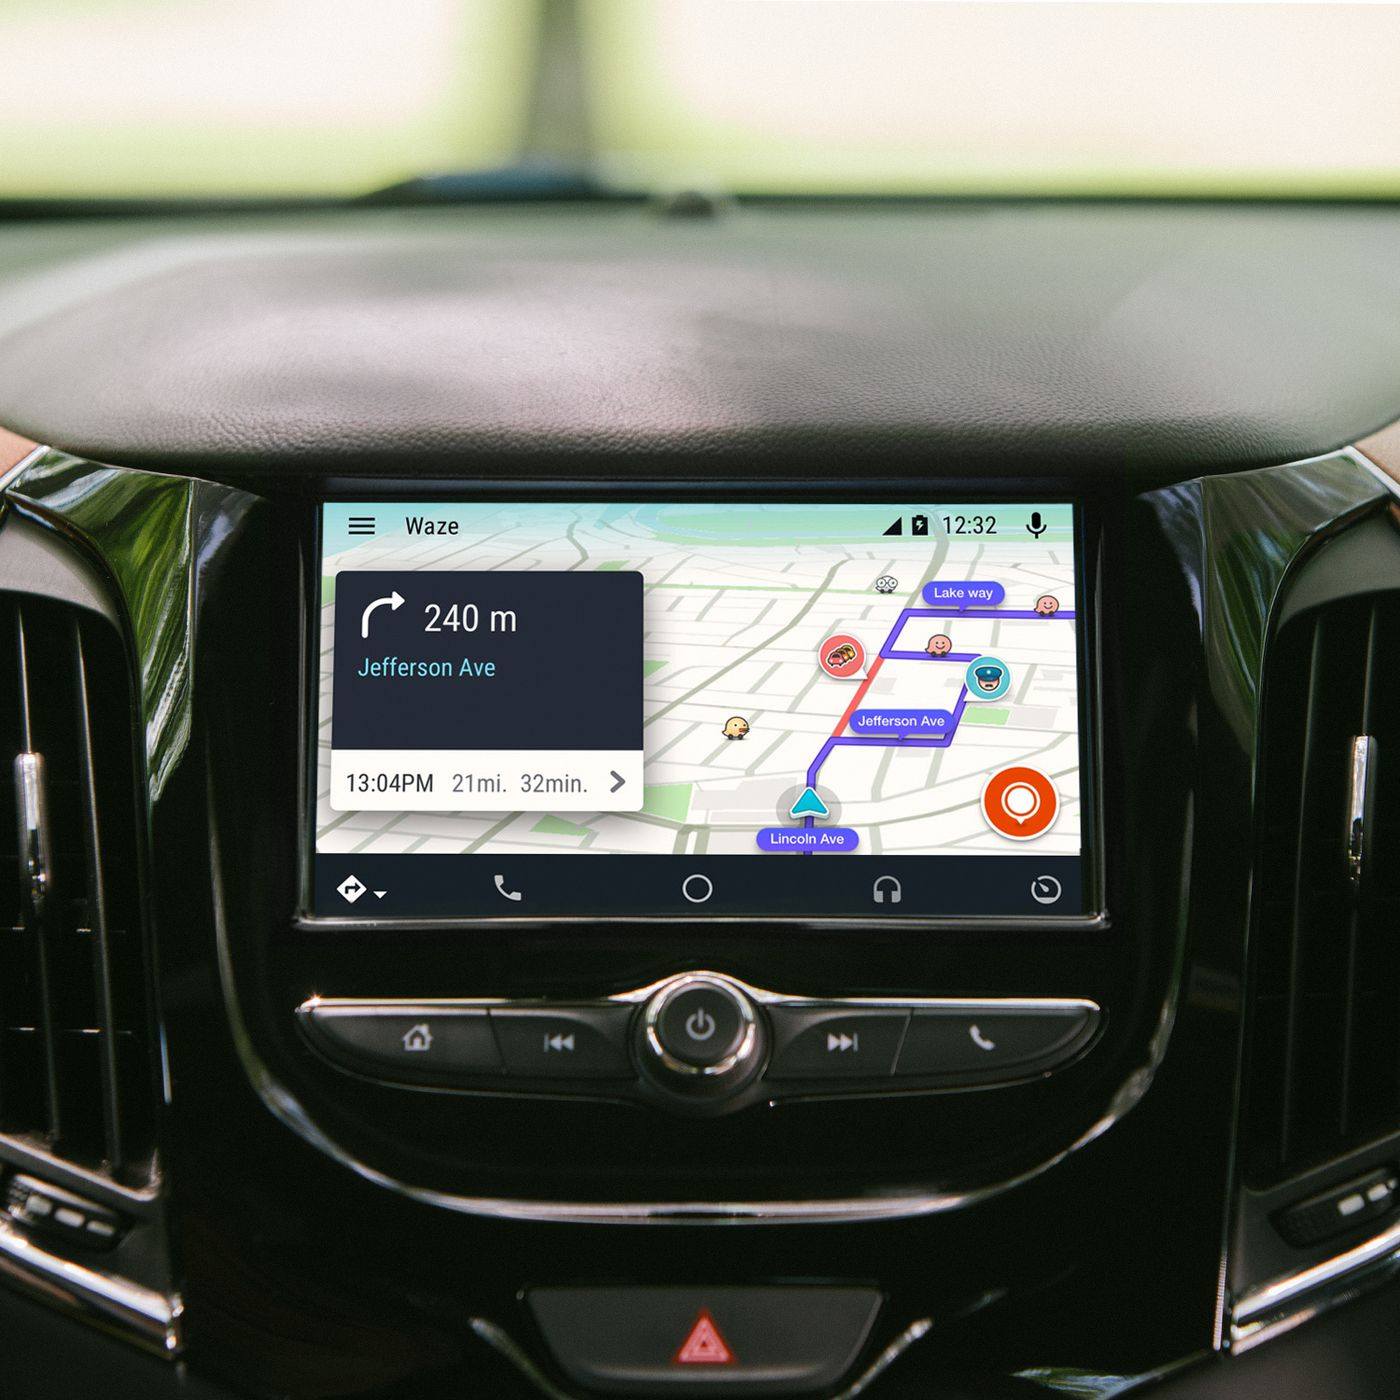 Waze arrives on Android Auto - The Verge